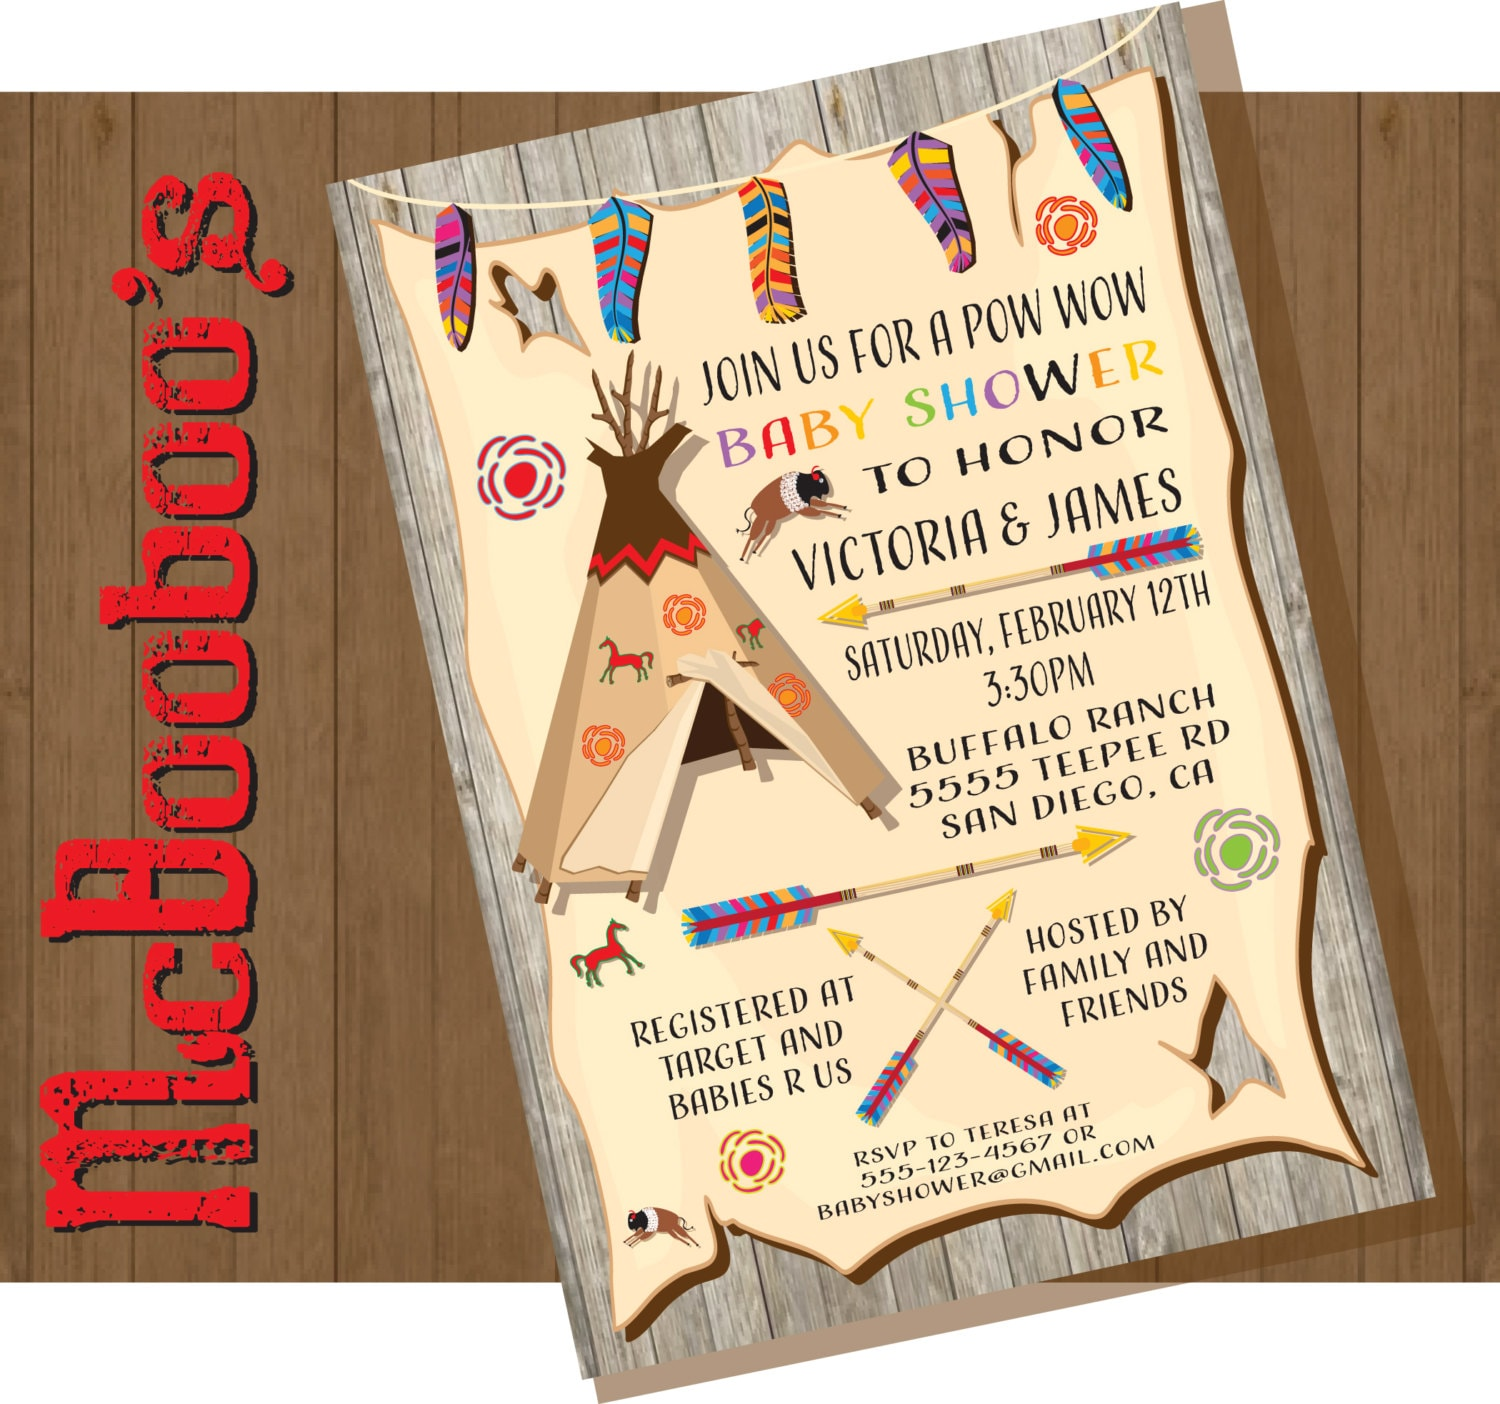 Tribal American Indian Baby Shower Invitations with feathers